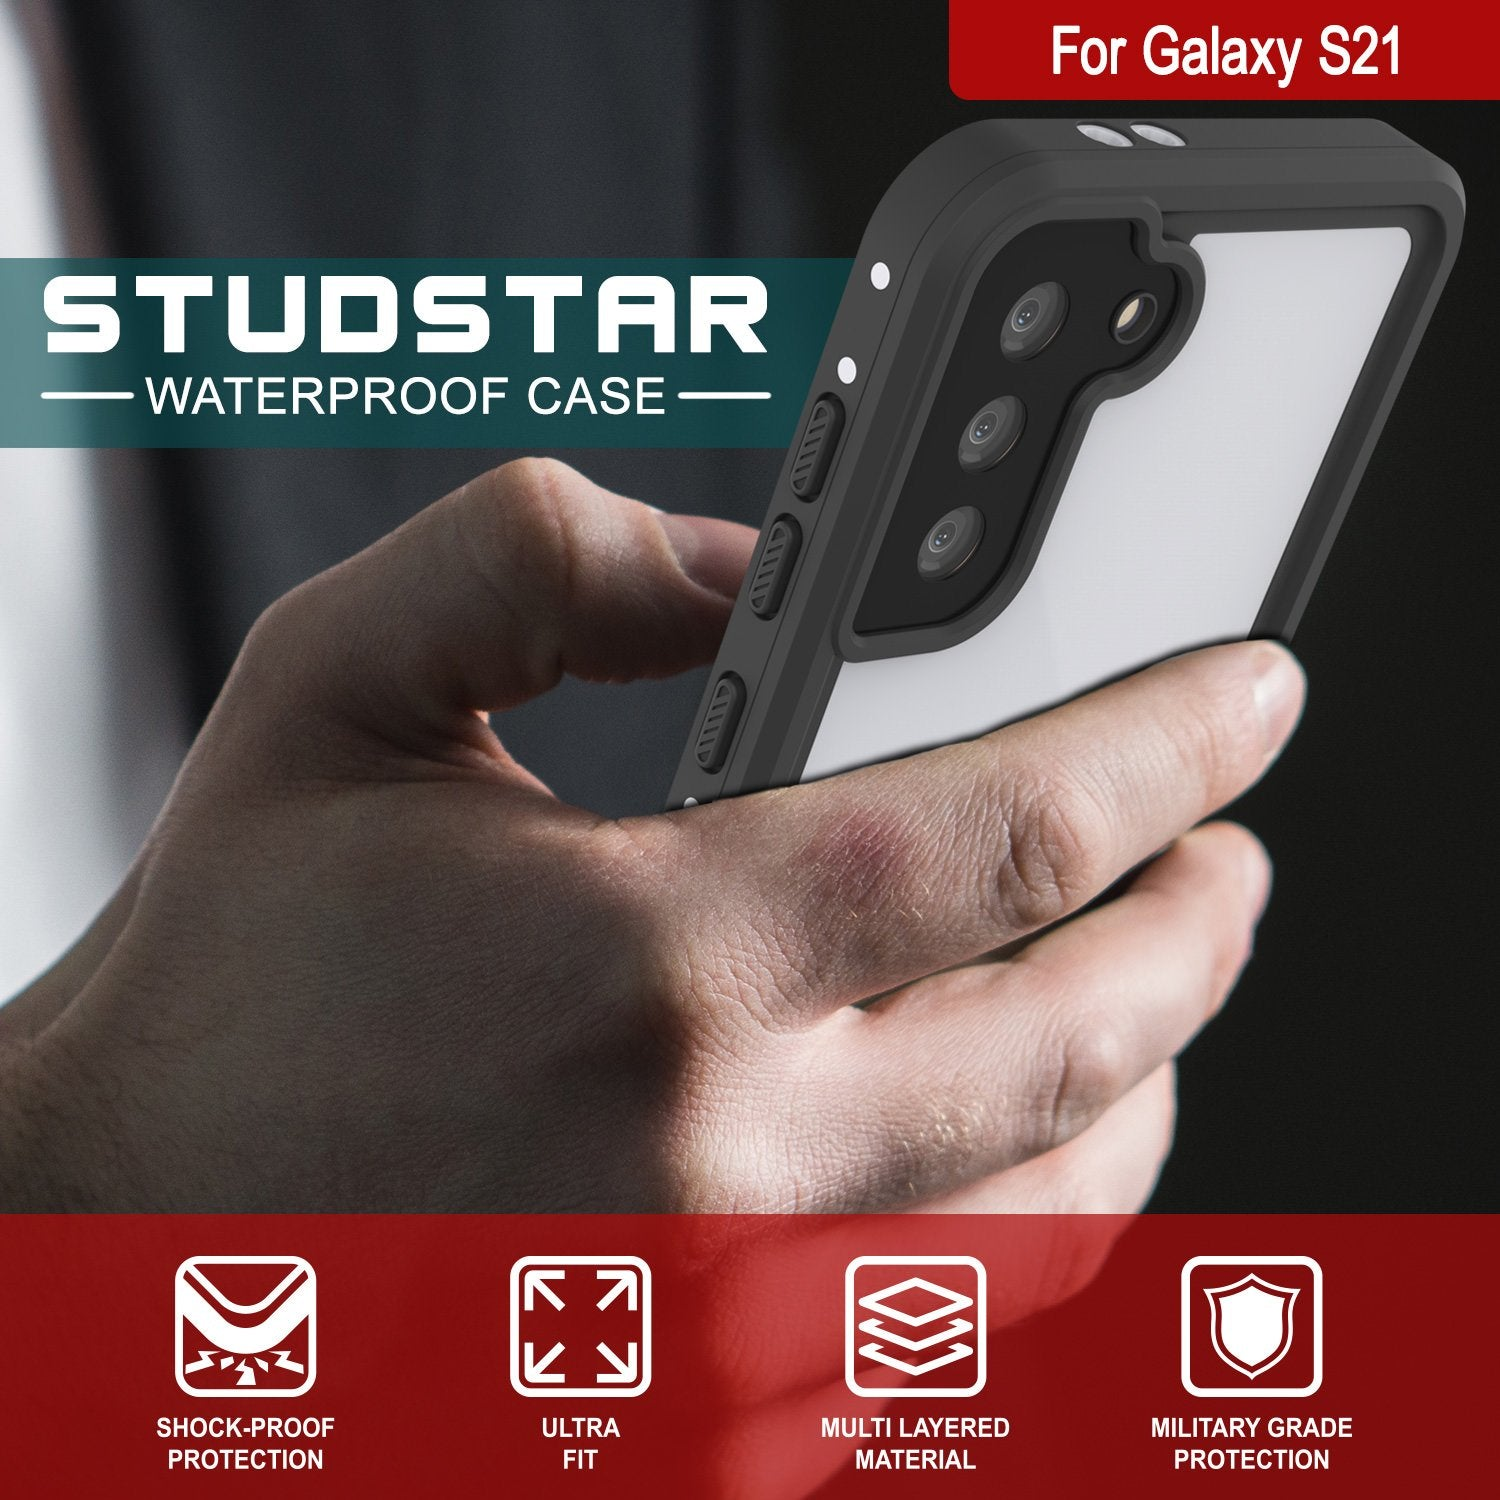 Galaxy S21 Waterproof Case, Punkcase StudStar White Thin 6.6ft Underwater IP68 Shock/Snow Proof